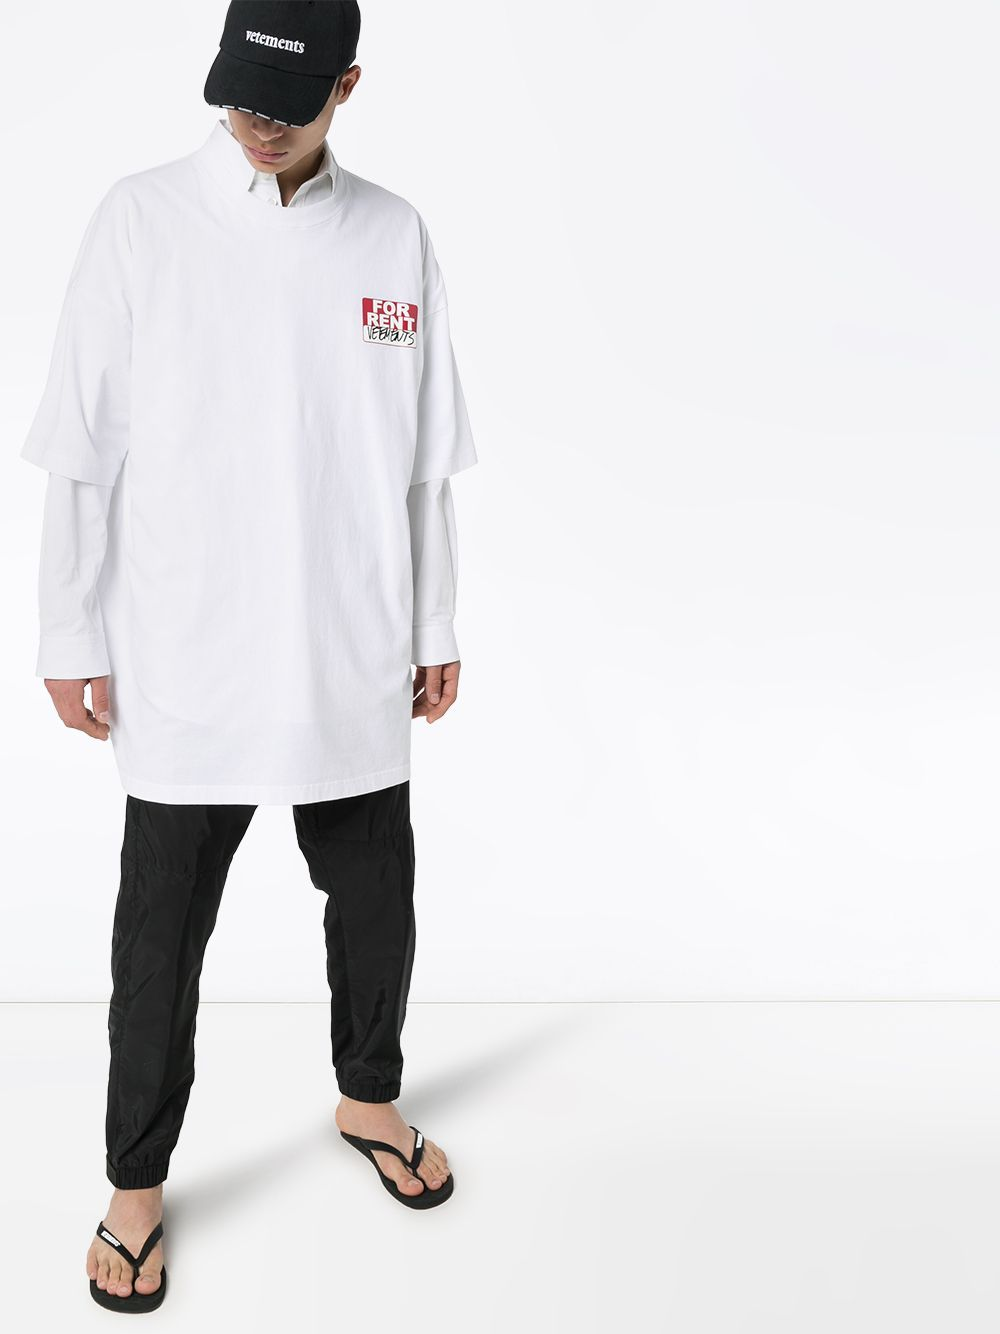 VETEMENTS 'FOR RENT t-shirt white